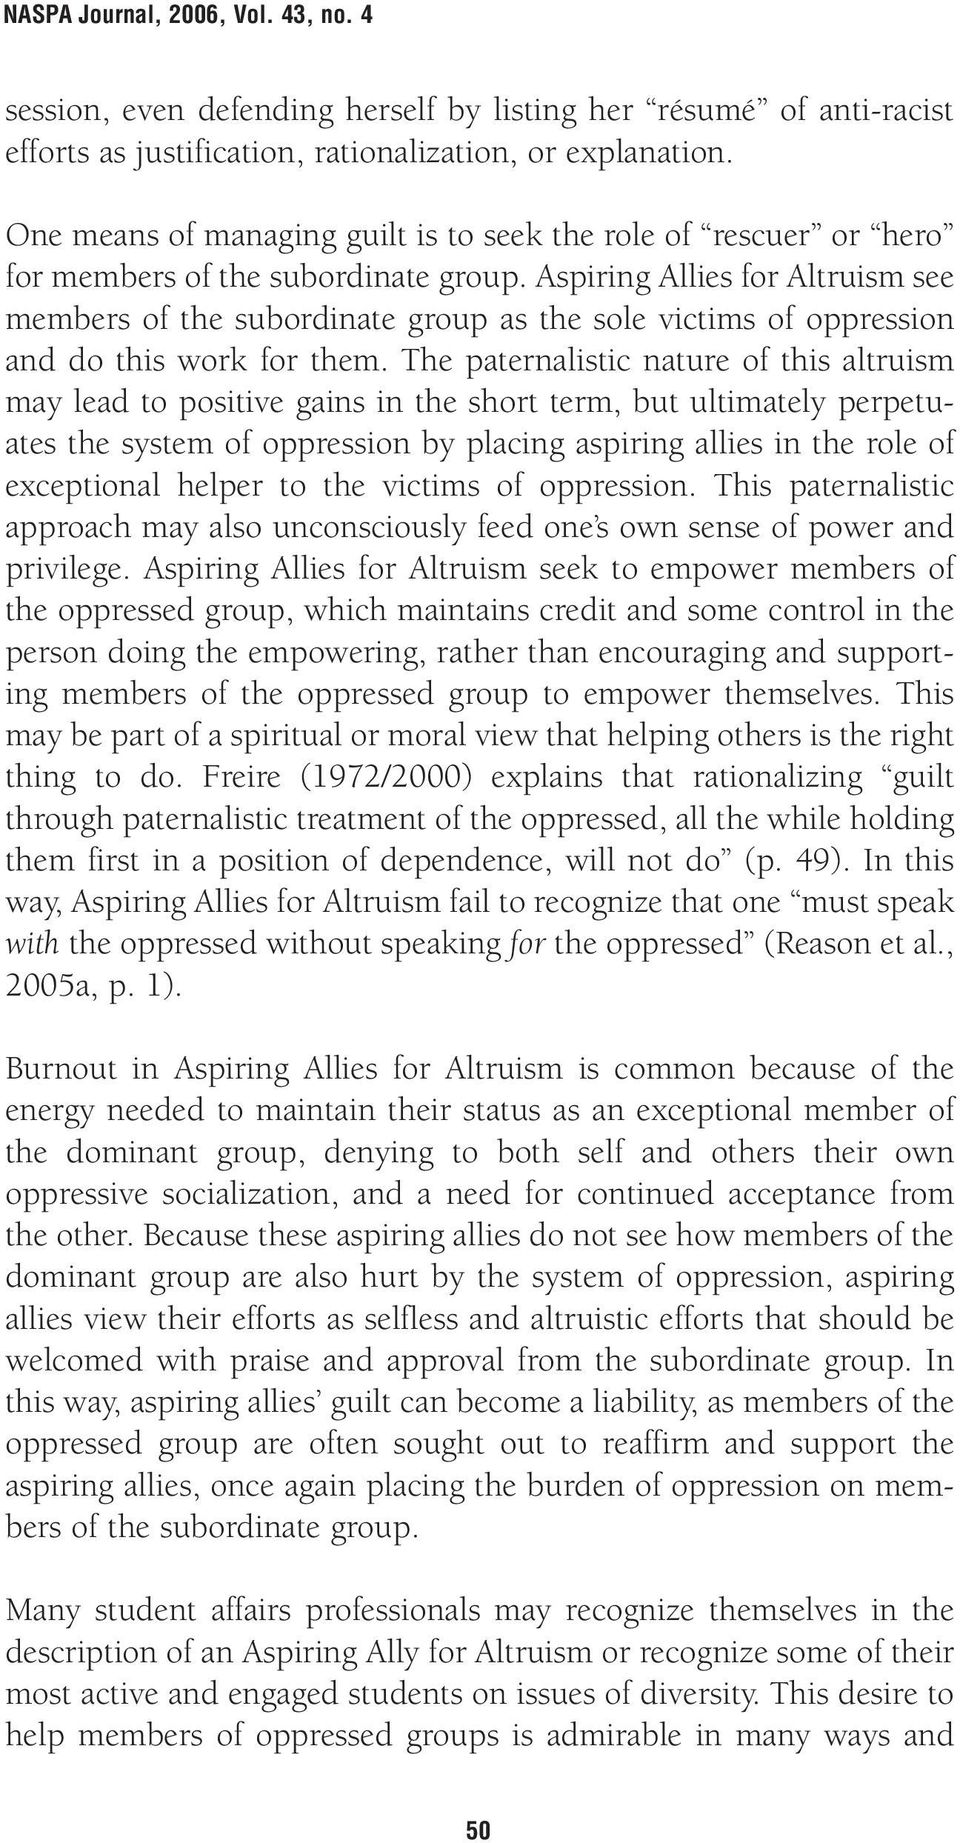 Aspiring Allies for Altruism see members of the subordinate group as the sole victims of oppression and do this work for them.